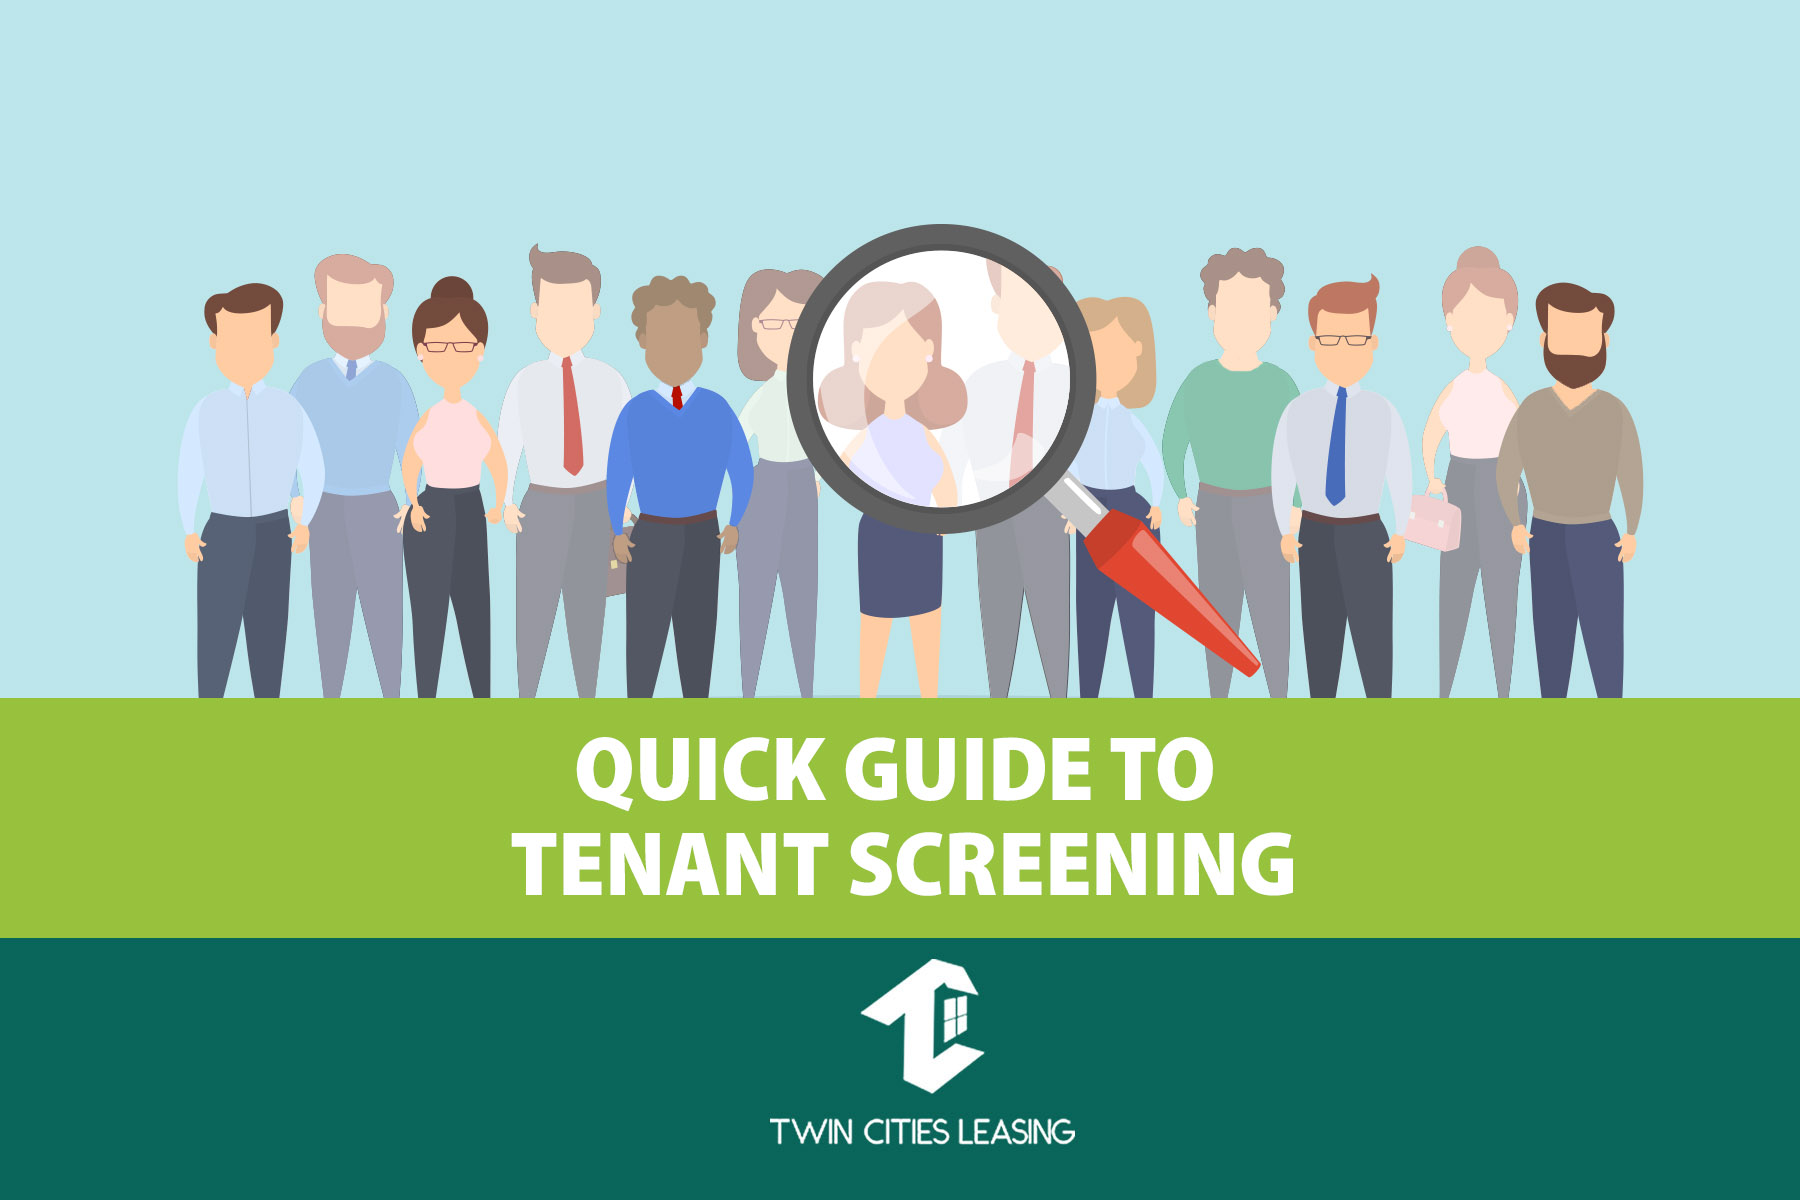 Quick Guide to Tenant Screening